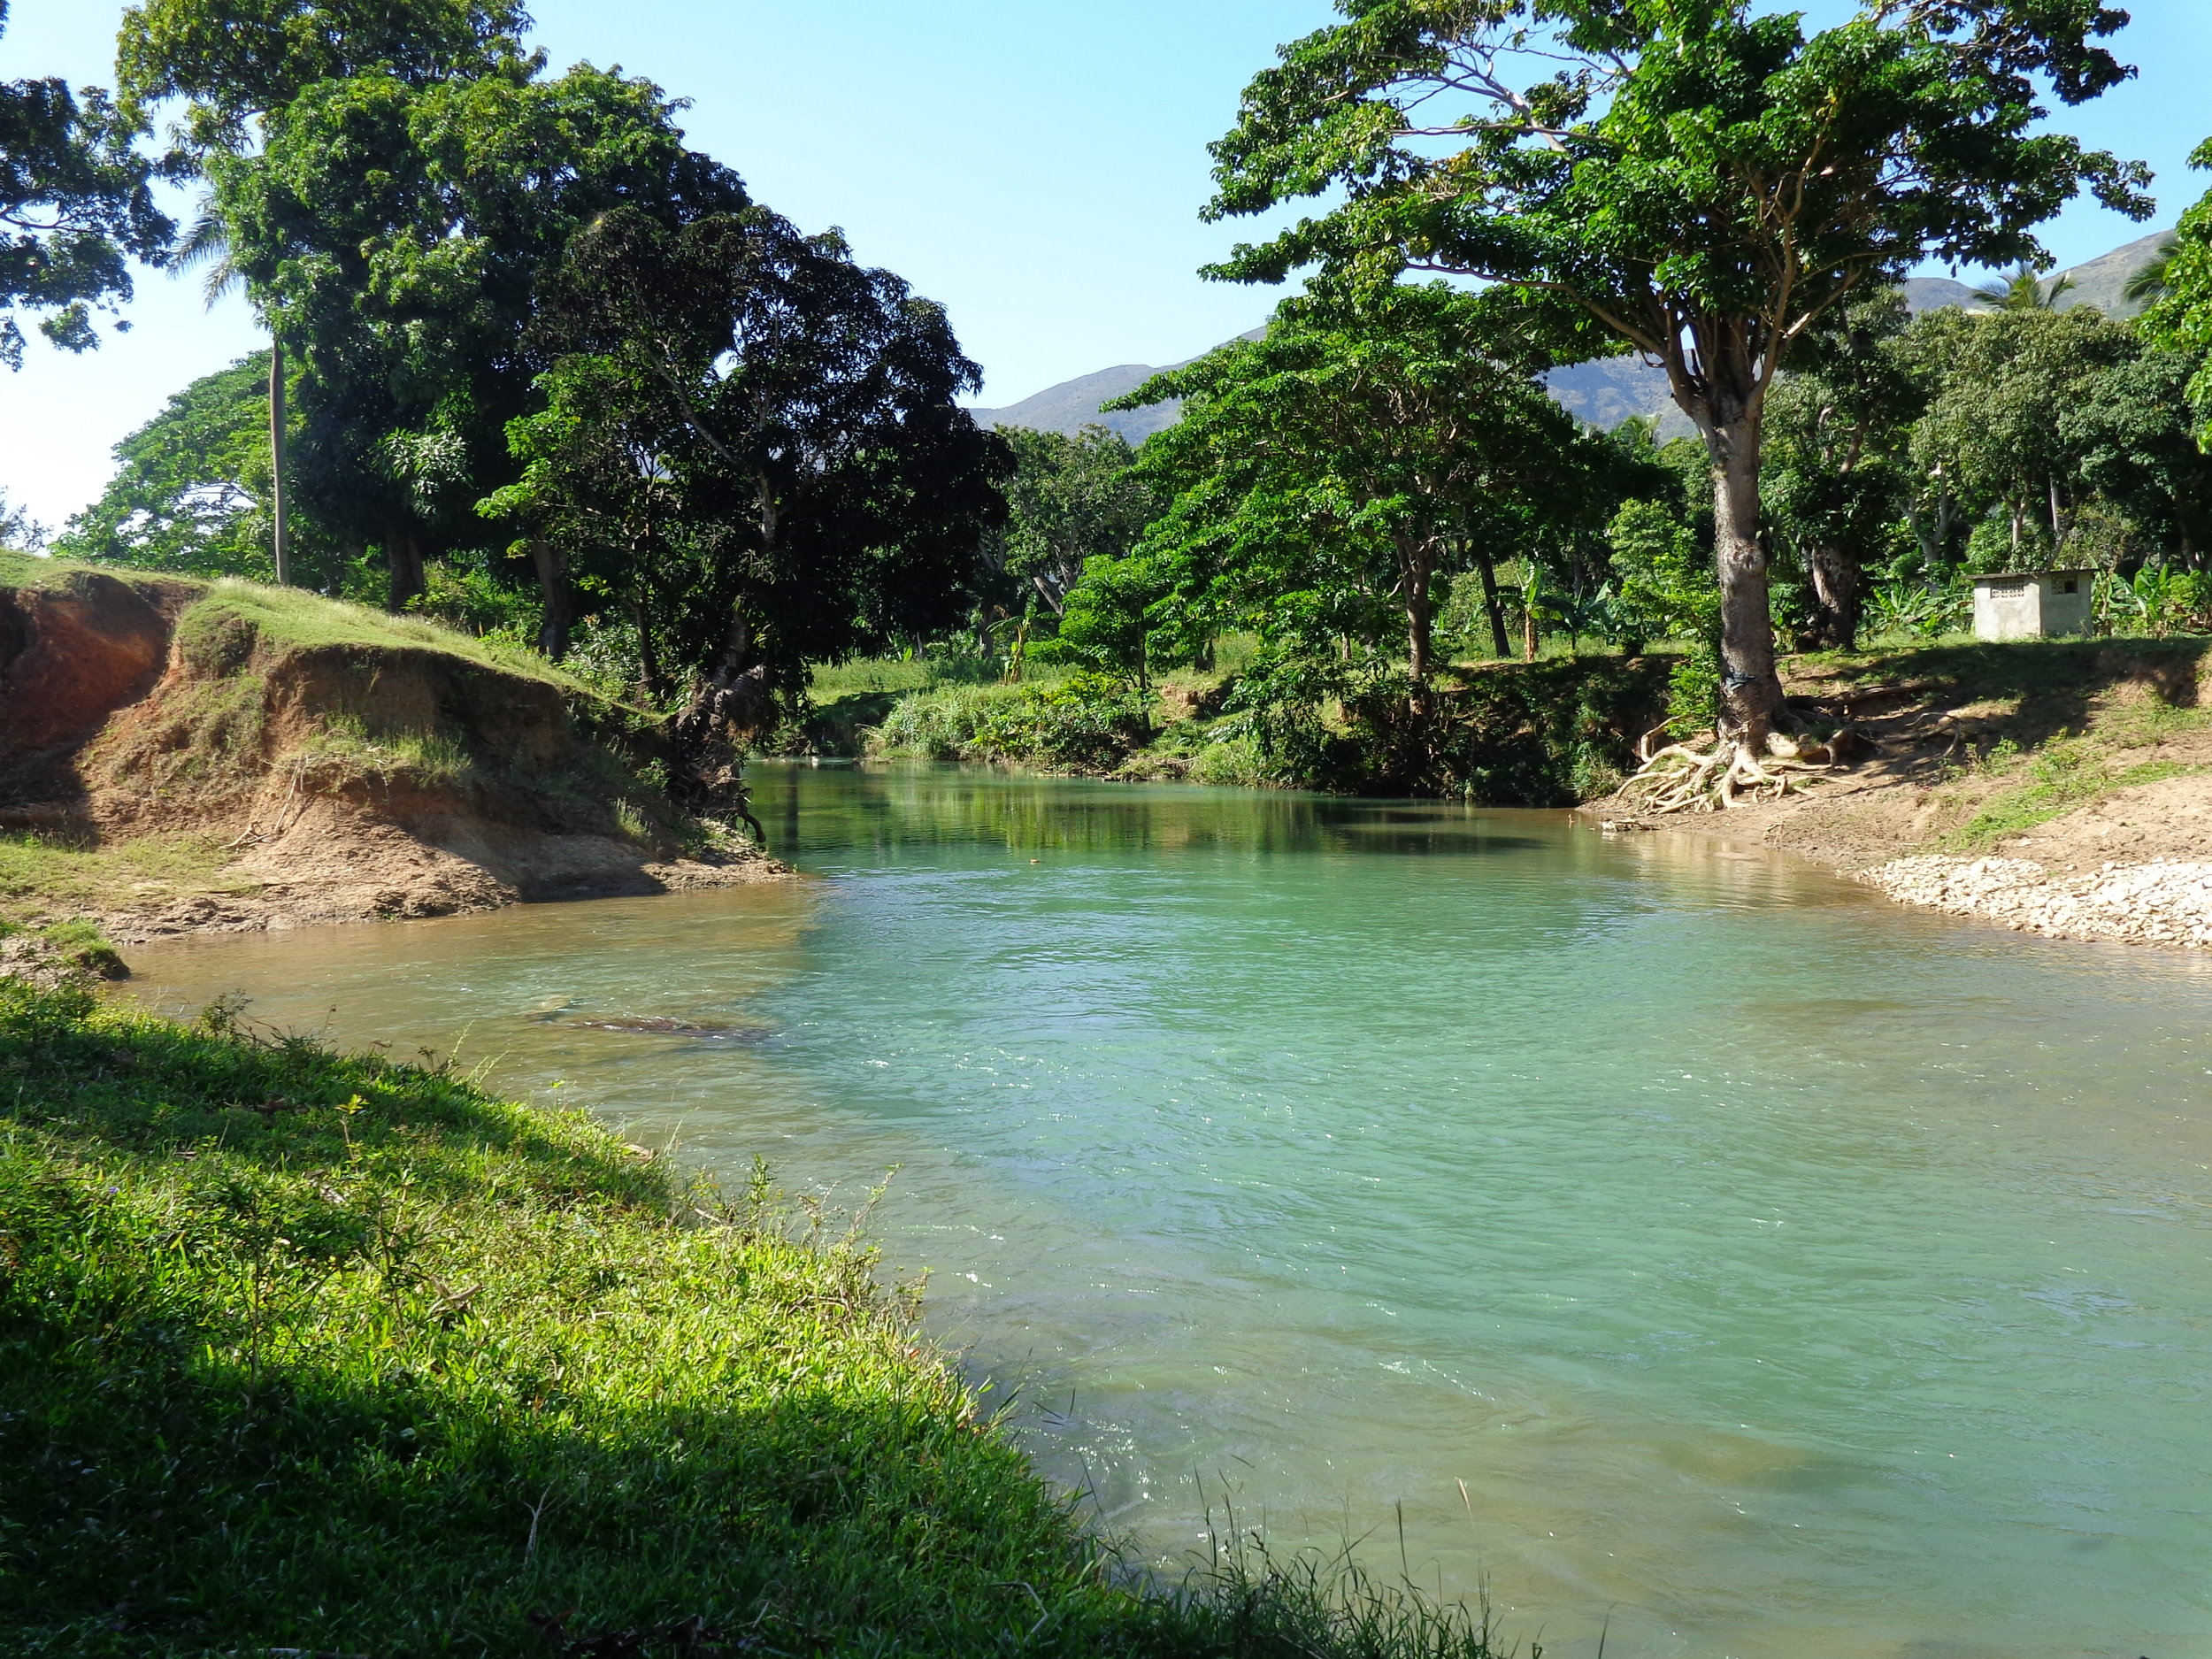 The river at St. Rafael, Haiti, which provides the main source of water for agricultural activities in the region.